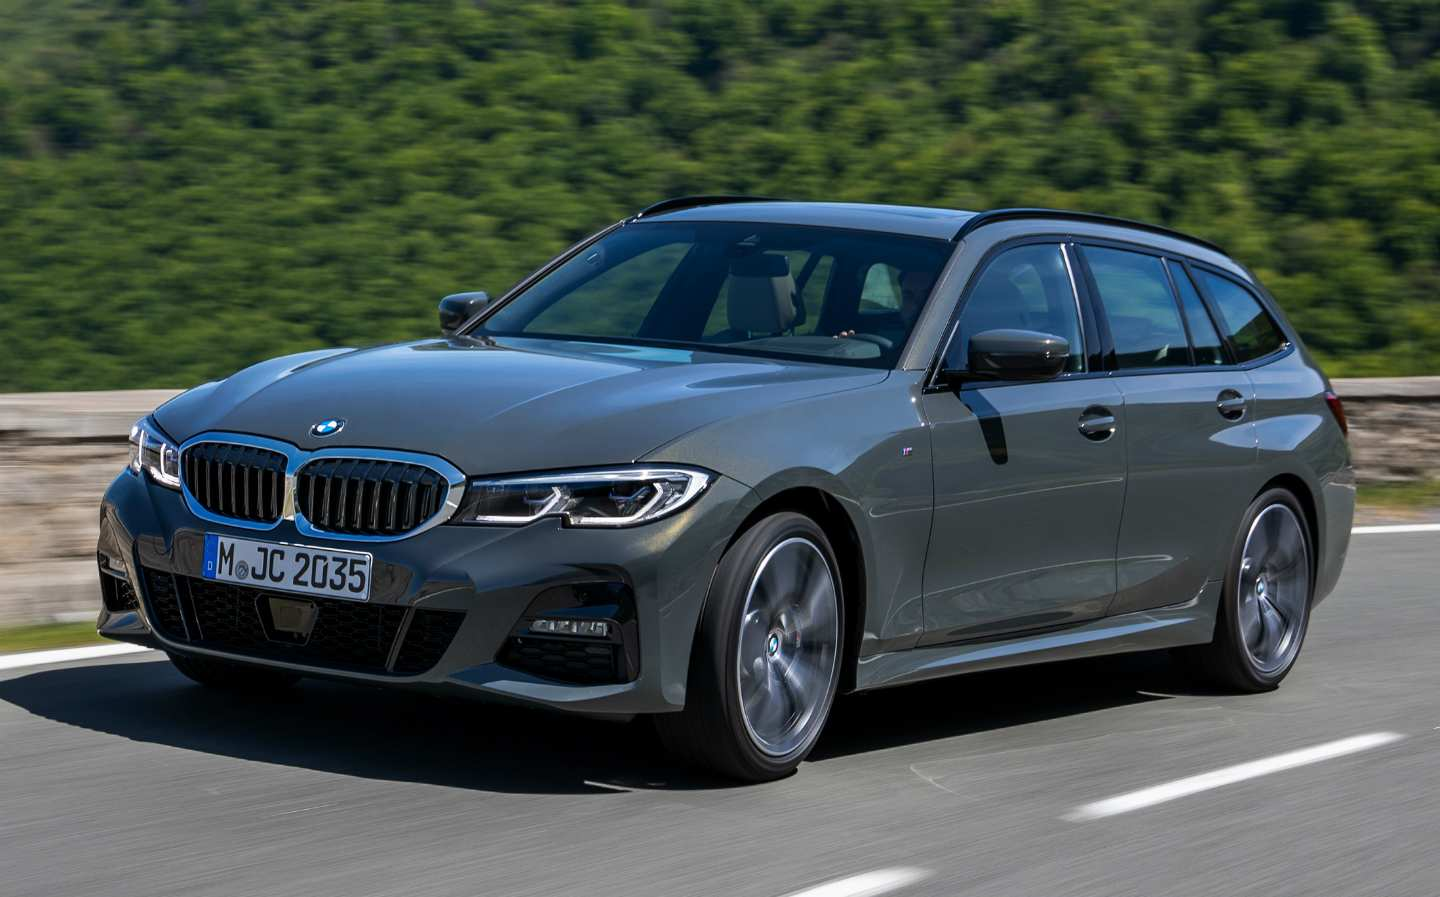 66 The Best New Bmw 3 Series Touring 2020 Reviews